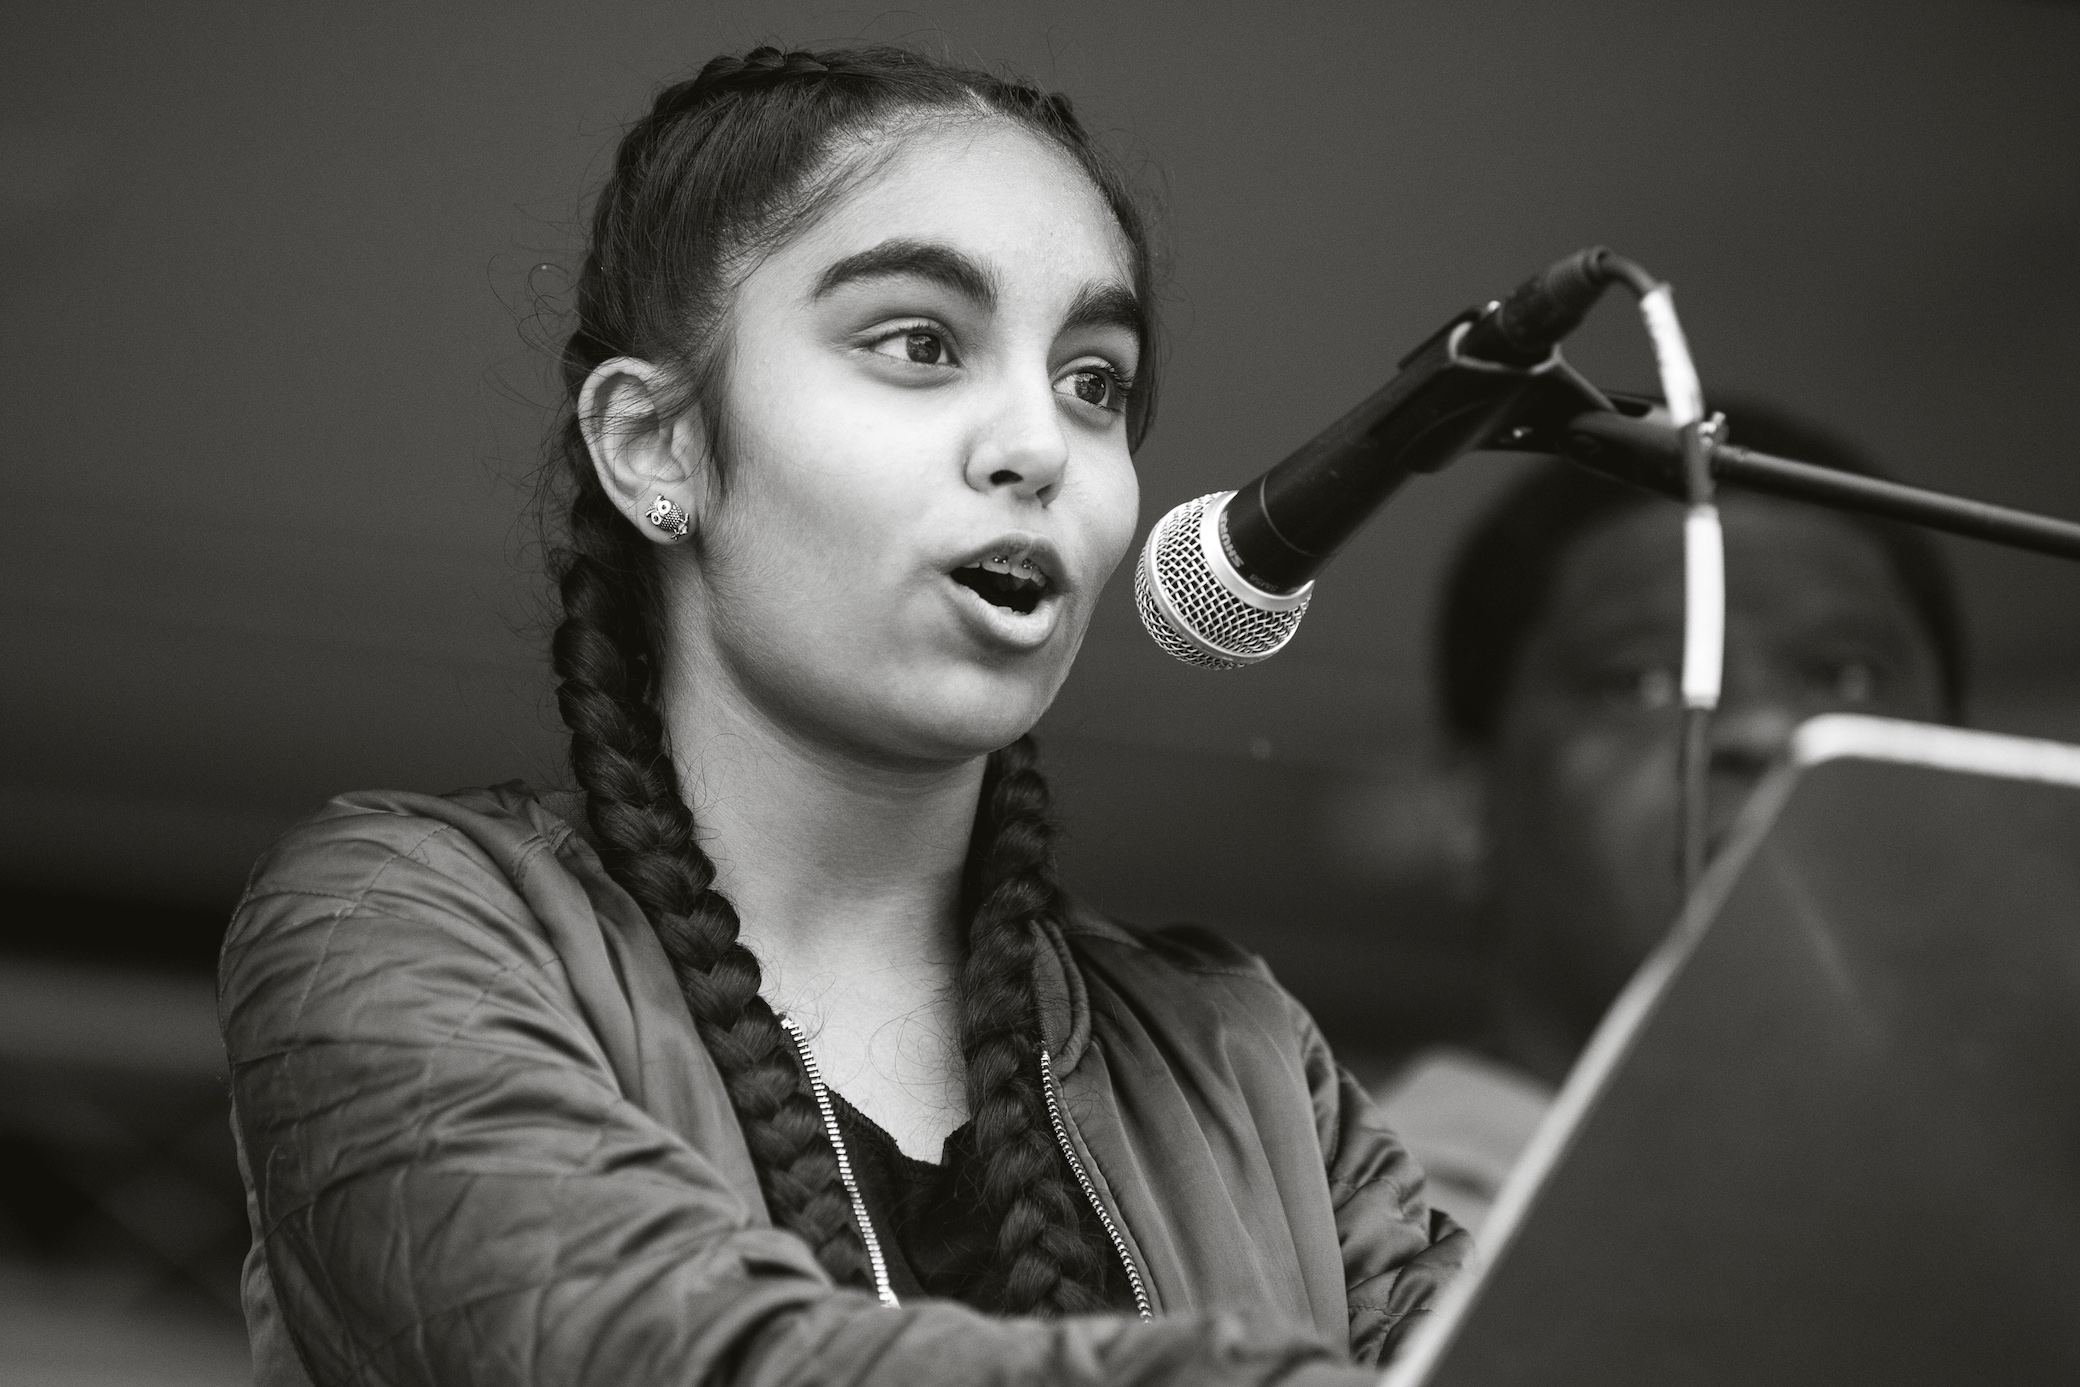 JHX9XF London, UK. 16th July, 2017. Amrita Kaur, a pupil at the Elizabeth Garrett Anderson School in Islington, addresses campaigners against cuts to education funding and their families in Parliament Square as part of a Carnival Against The Cuts protest organised by Fair Funding For All Schools. Credit: Mark Kerrison/Alamy Live News